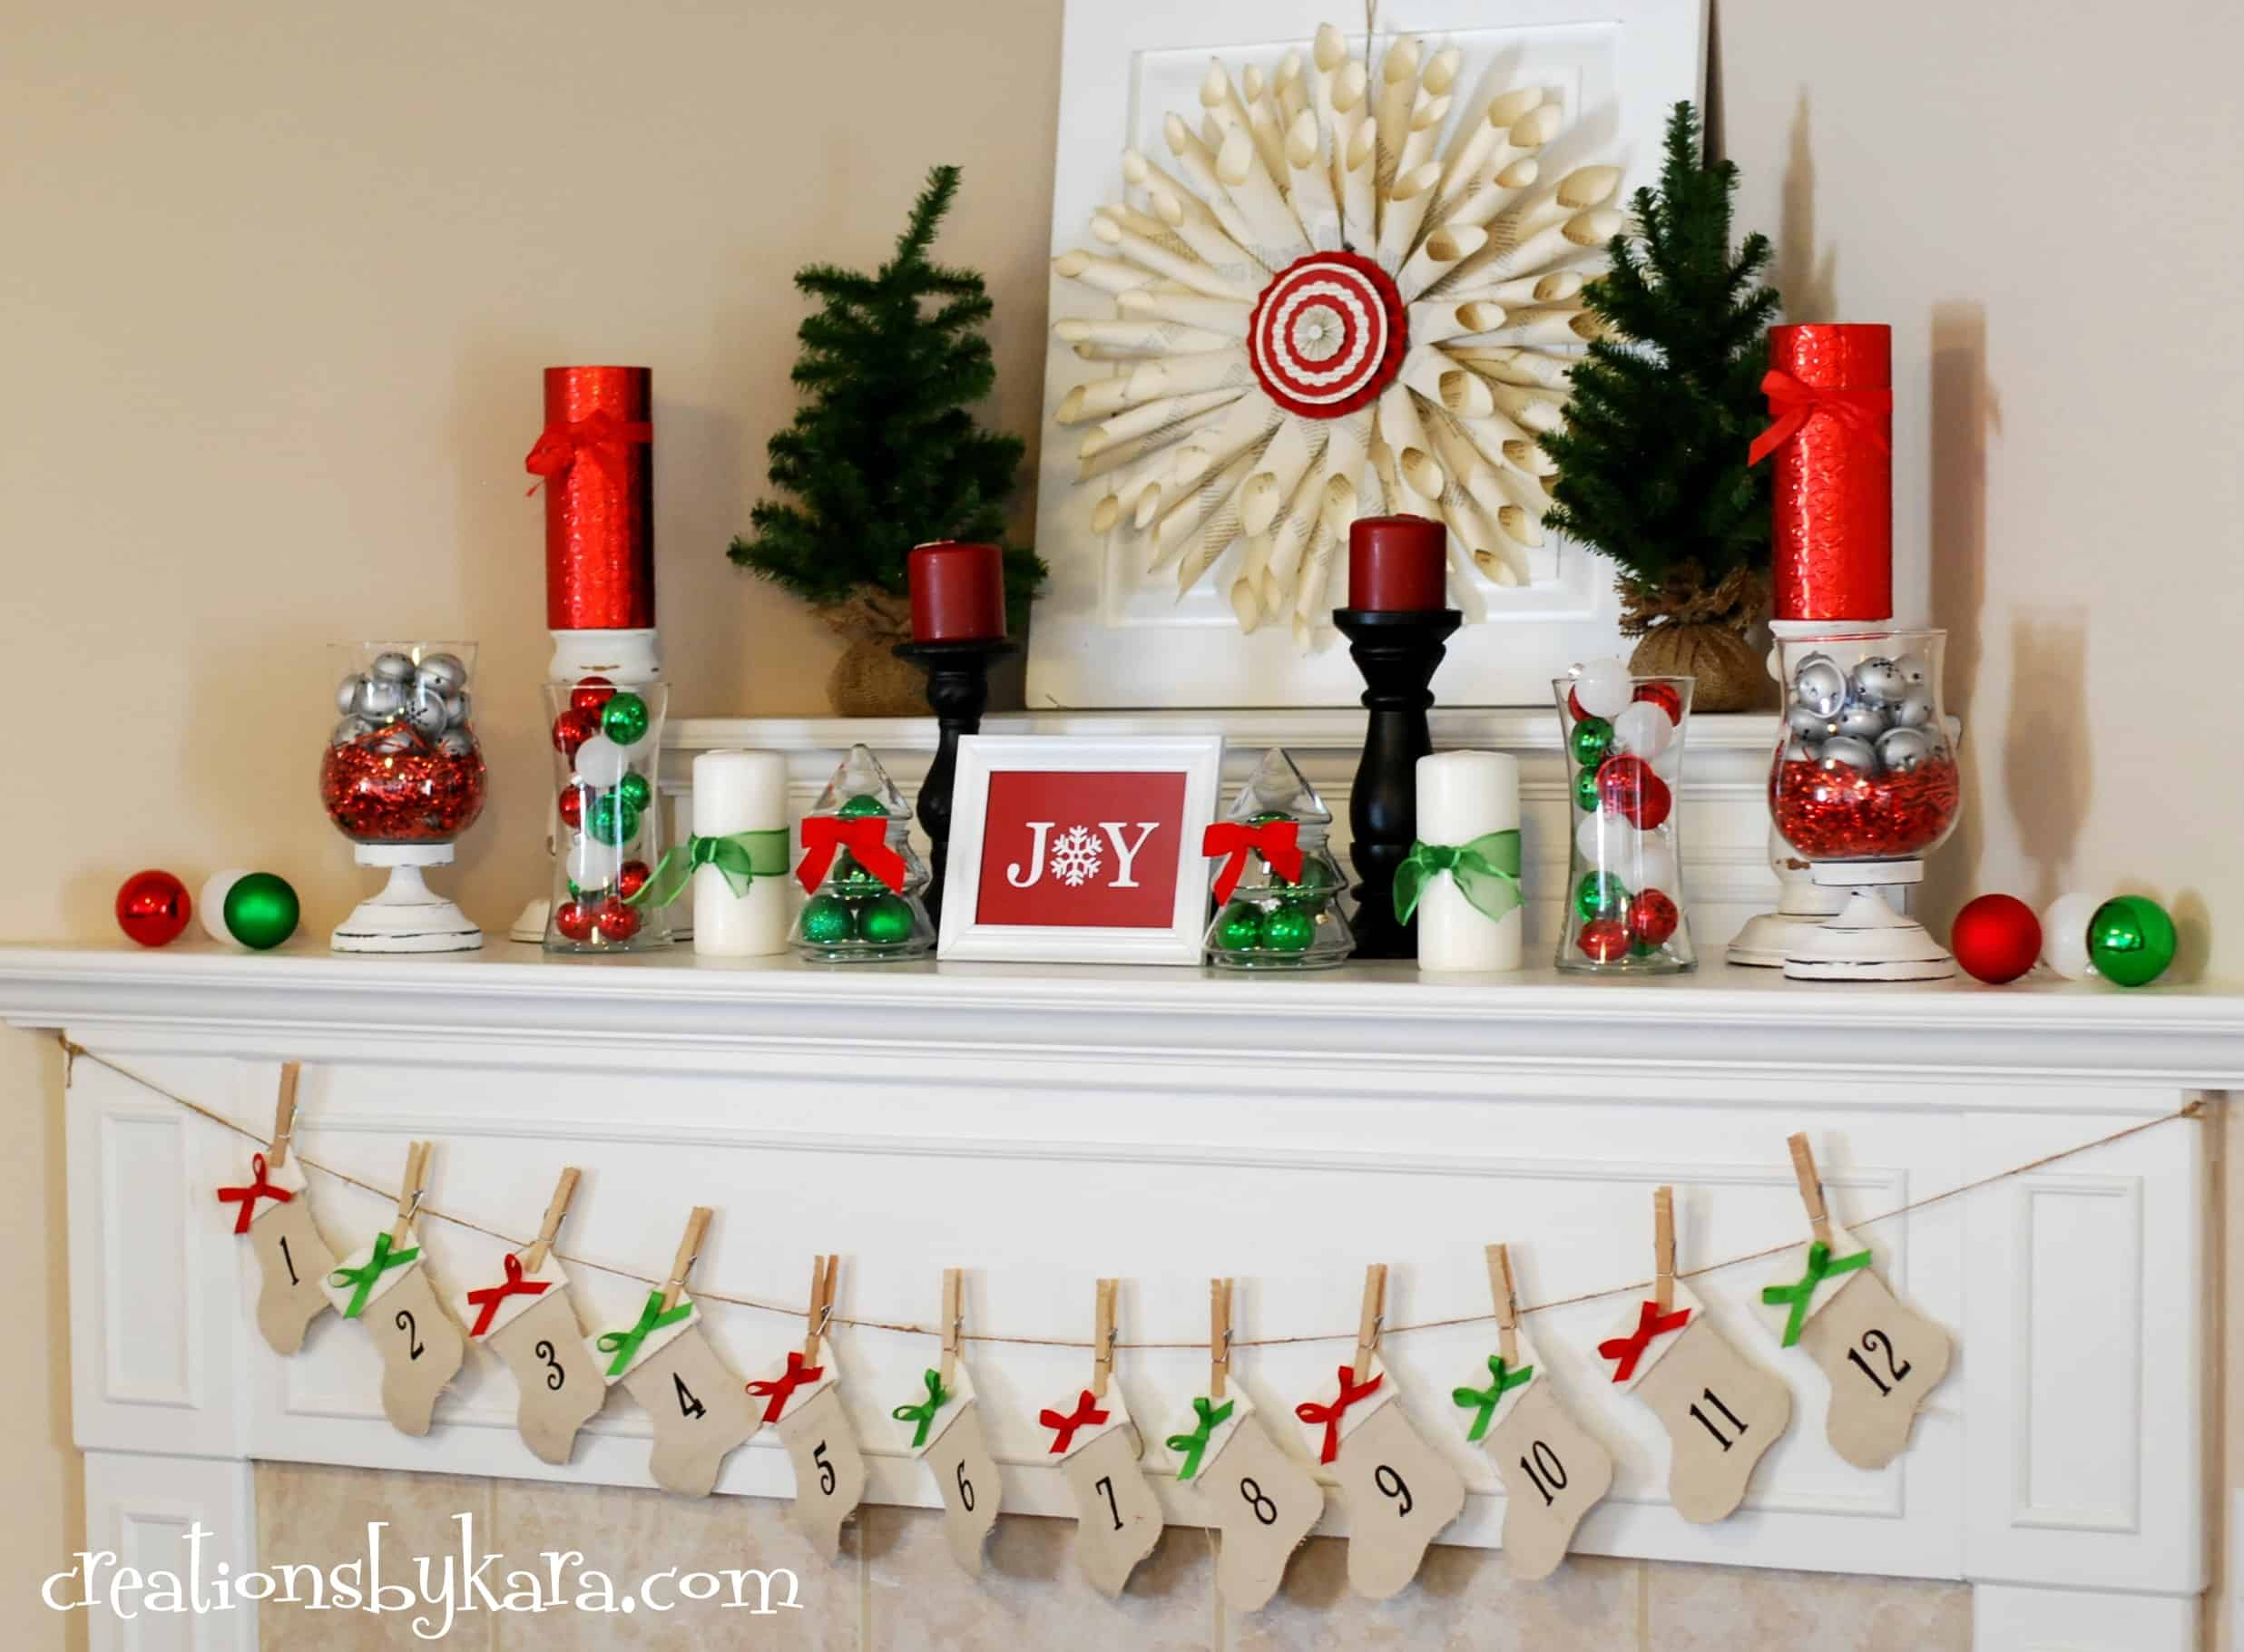 Christmas mantel decor 2012 creations by kara for Easy christmas home decorations